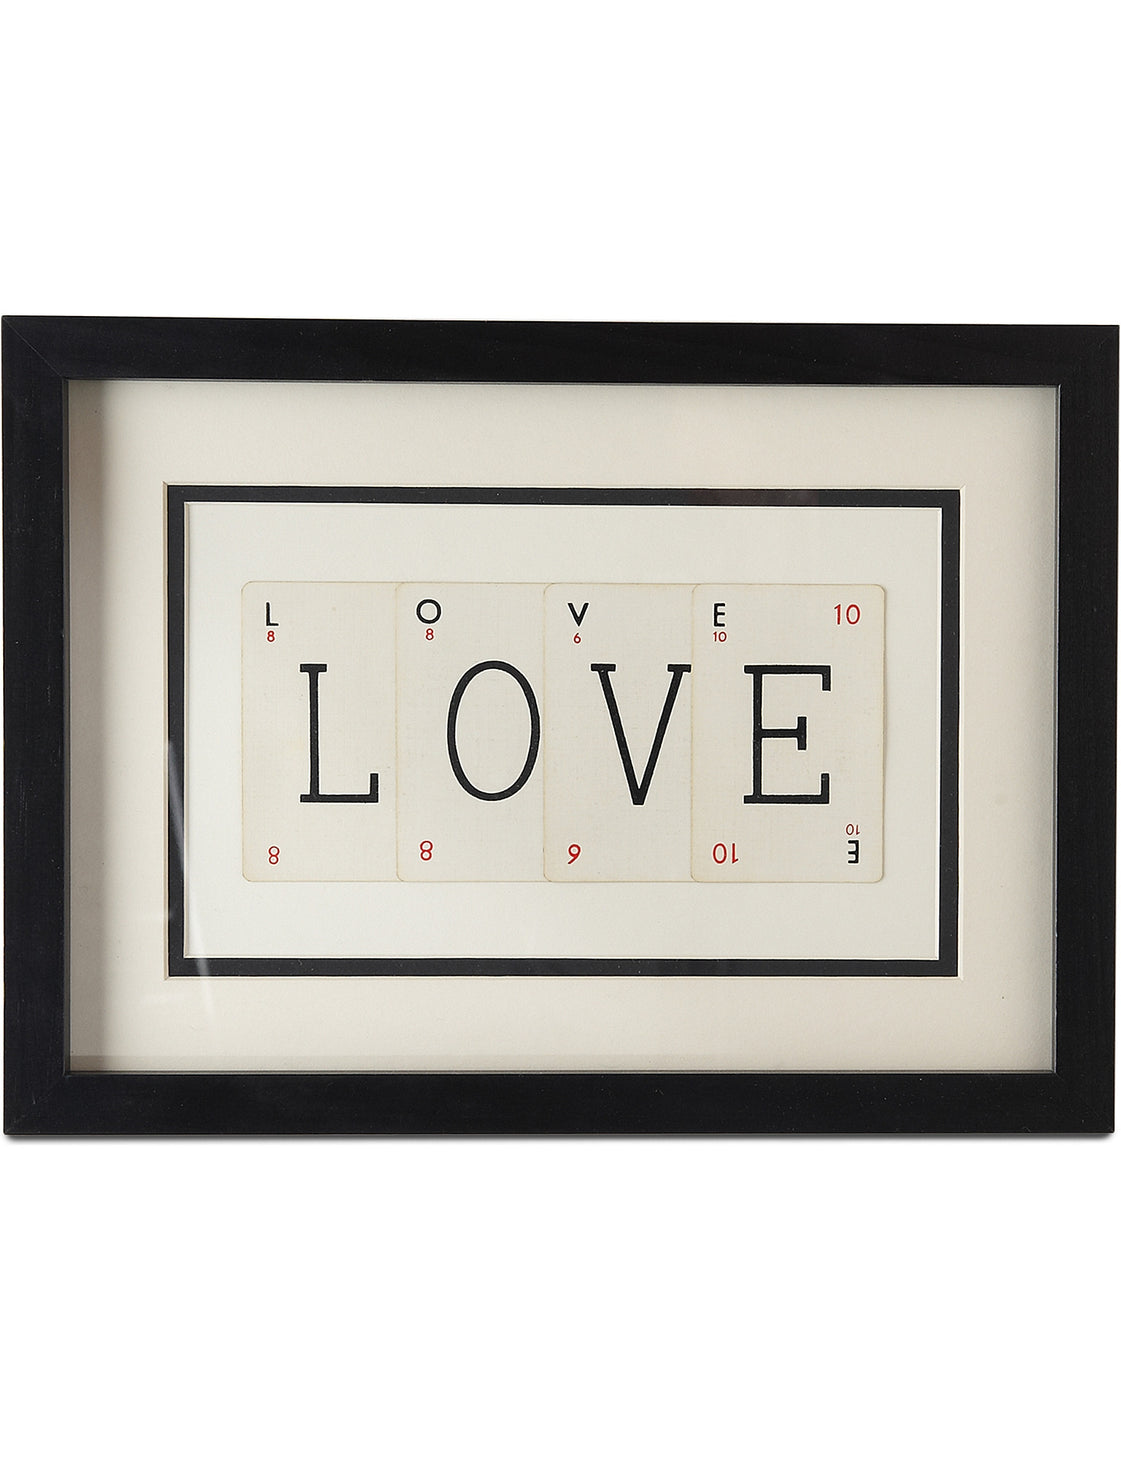 Small LOVE Playing Card Frame